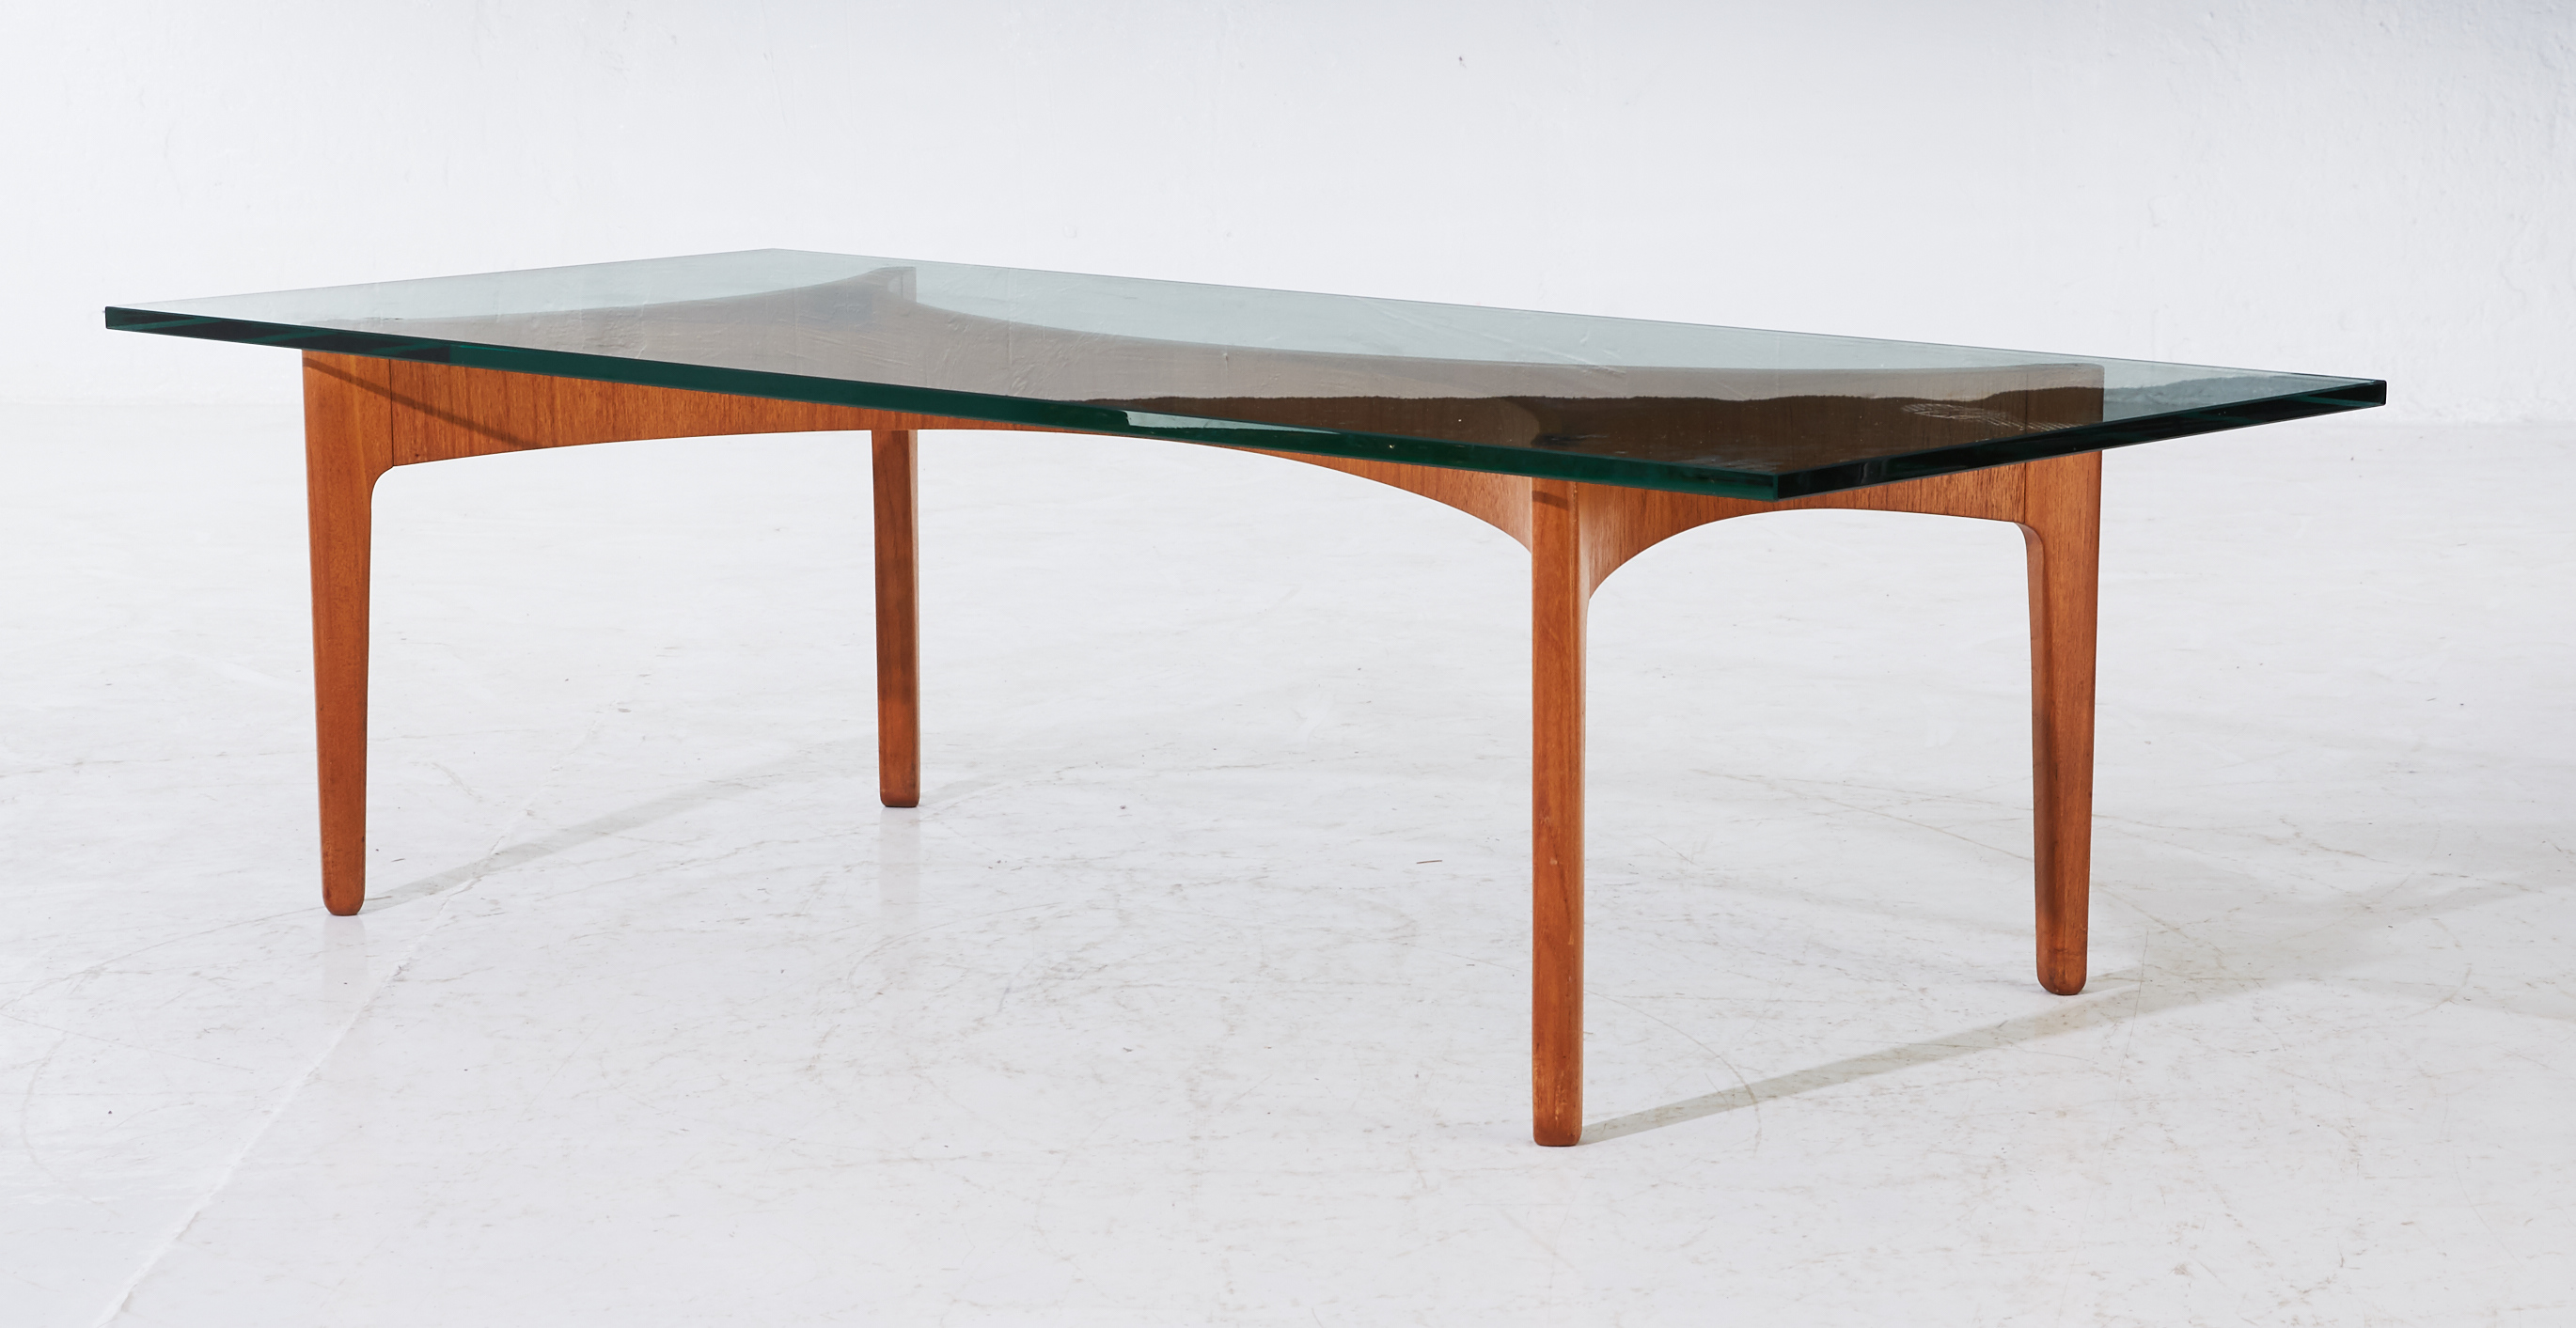 Sculptural coffee table by Sven Ellekaer for Christian Linneberg, Denmark